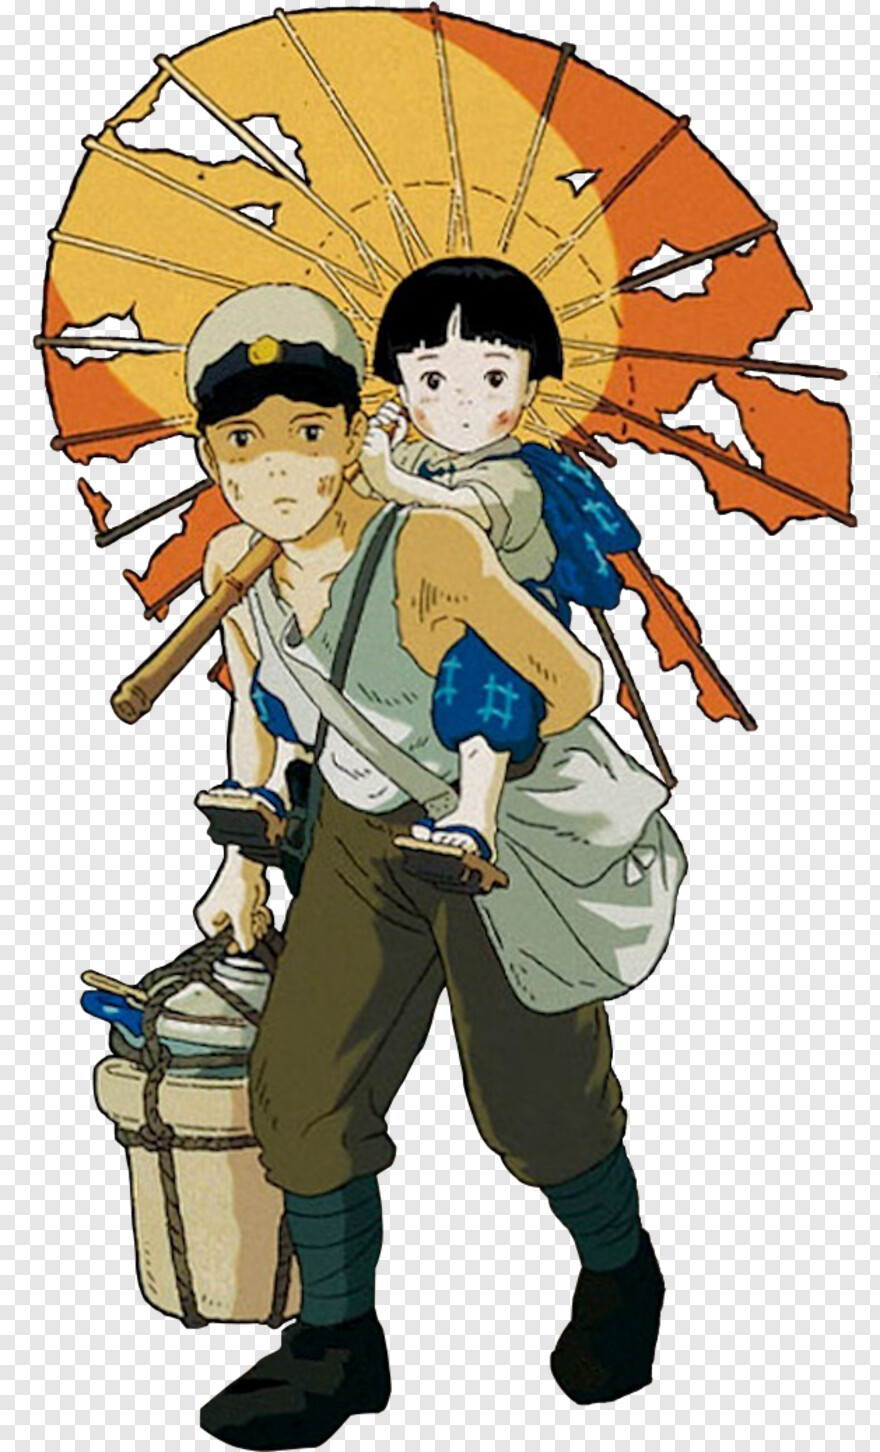 Grave Of The Fireflies Download : grave, fireflies, download, Studio, Ghibli, Grave, Fireflies, Download, 629x1038, (#9990875), Image, PngJoy